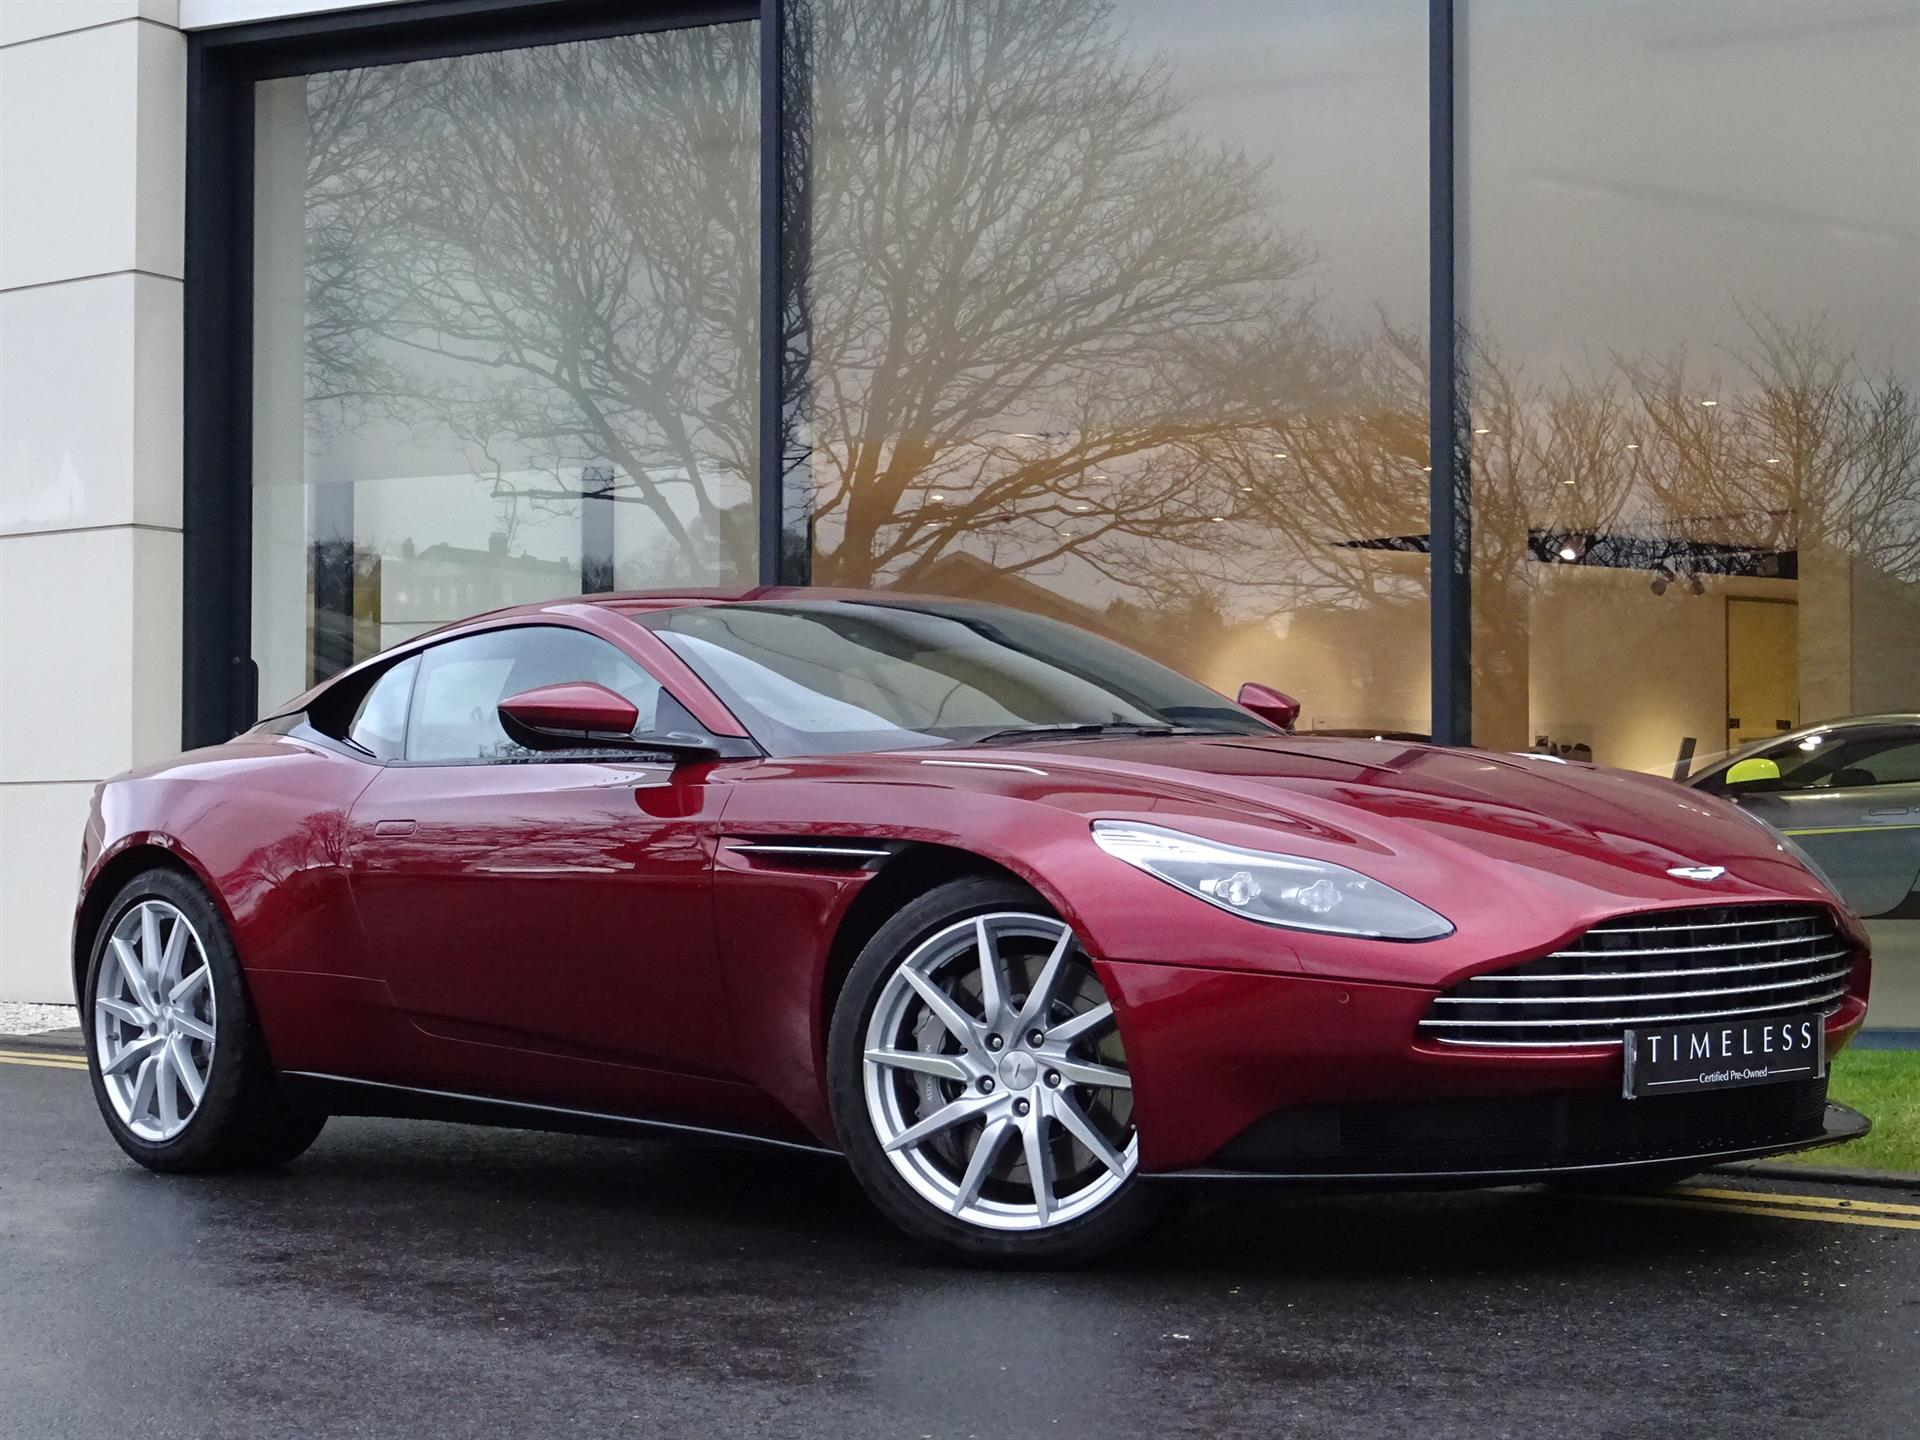 aston martin lagonda pre owned used aston martins car details db11 coupe jct600. Black Bedroom Furniture Sets. Home Design Ideas